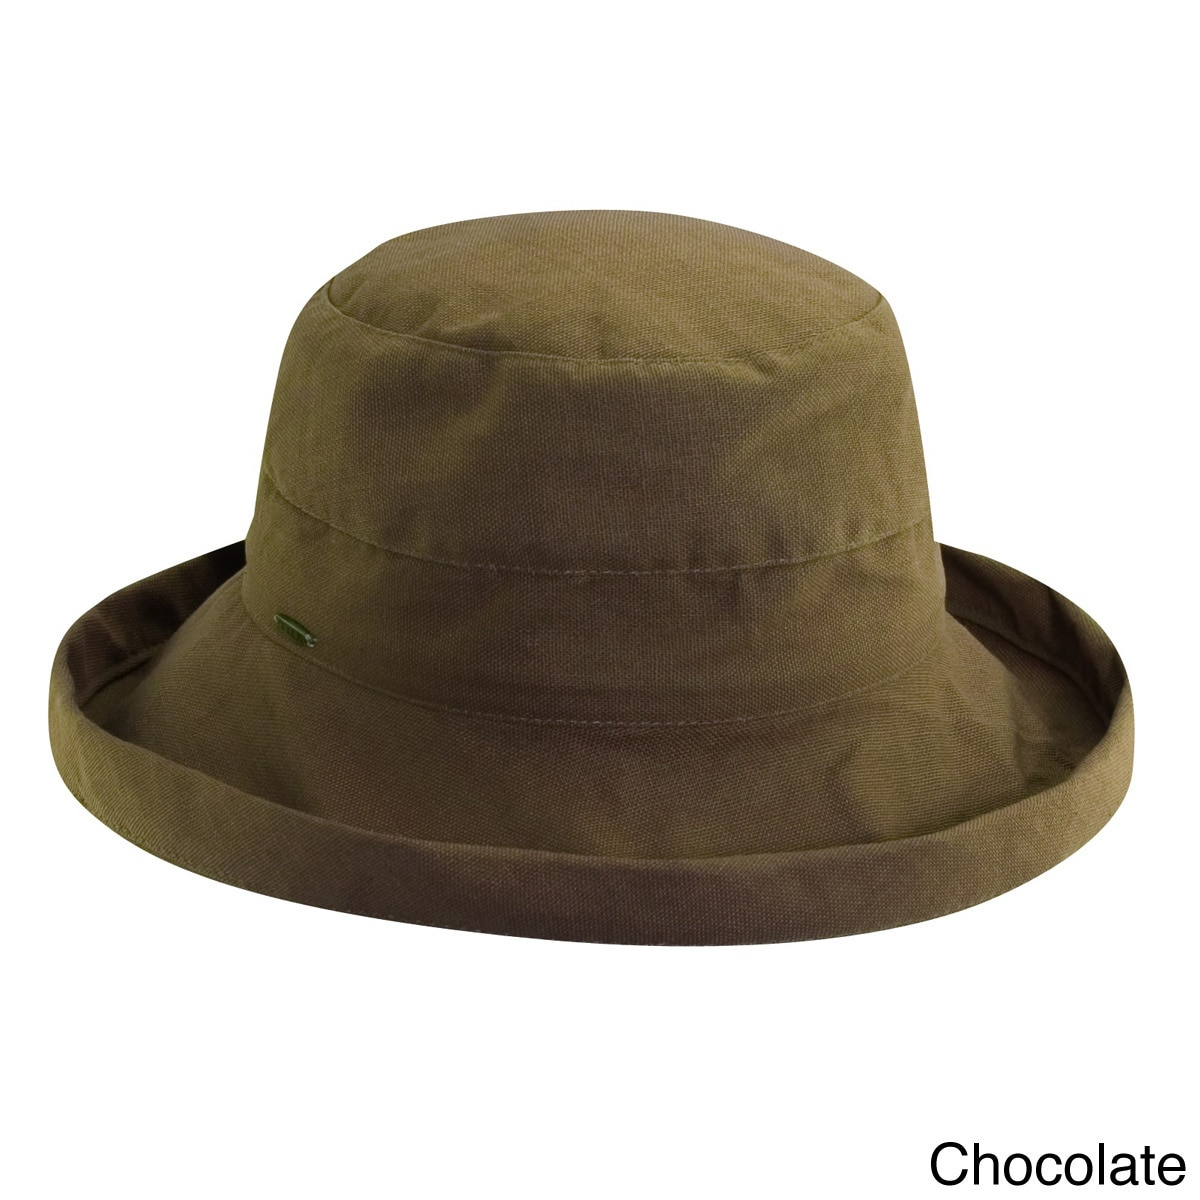 c71b6148d5095 Shop Scala Women s Cotton UPF-Protected Packable Sun Hat - Free Shipping On  Orders Over  45 - Overstock - 6535306